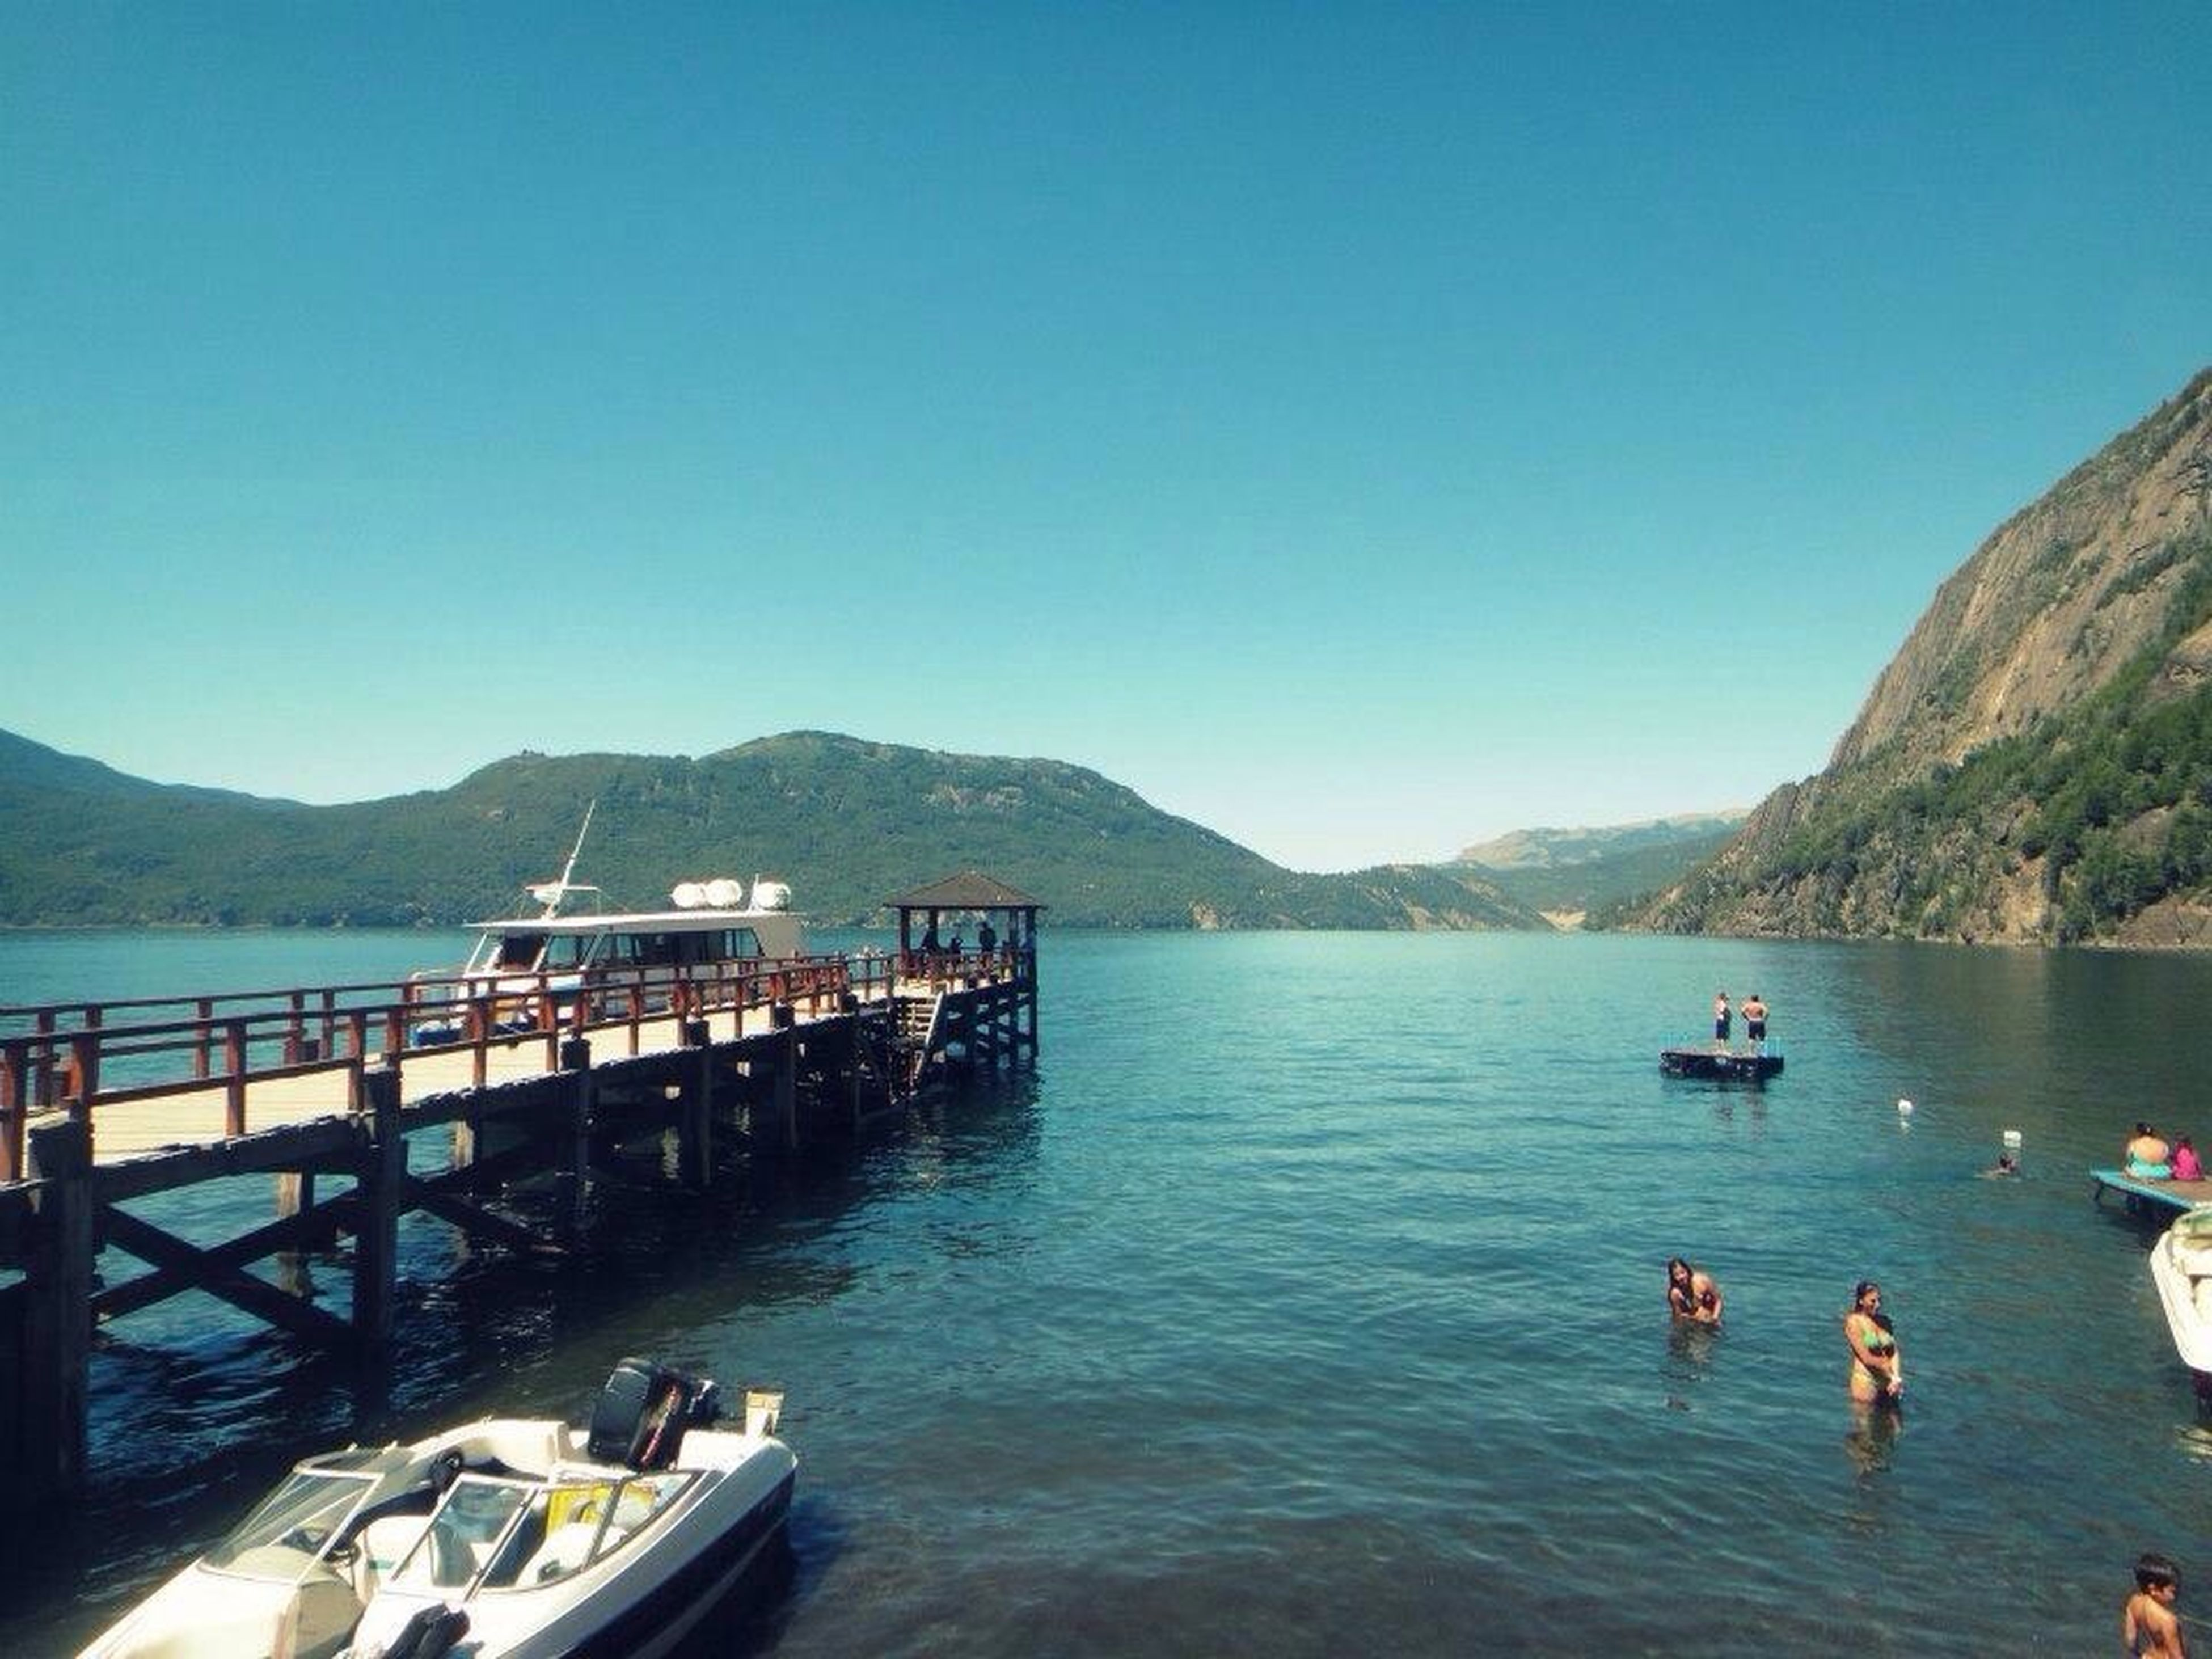 mountain, water, clear sky, copy space, mountain range, blue, nautical vessel, transportation, tranquility, tranquil scene, scenics, pier, beauty in nature, lake, nature, sea, boat, railing, mode of transport, day